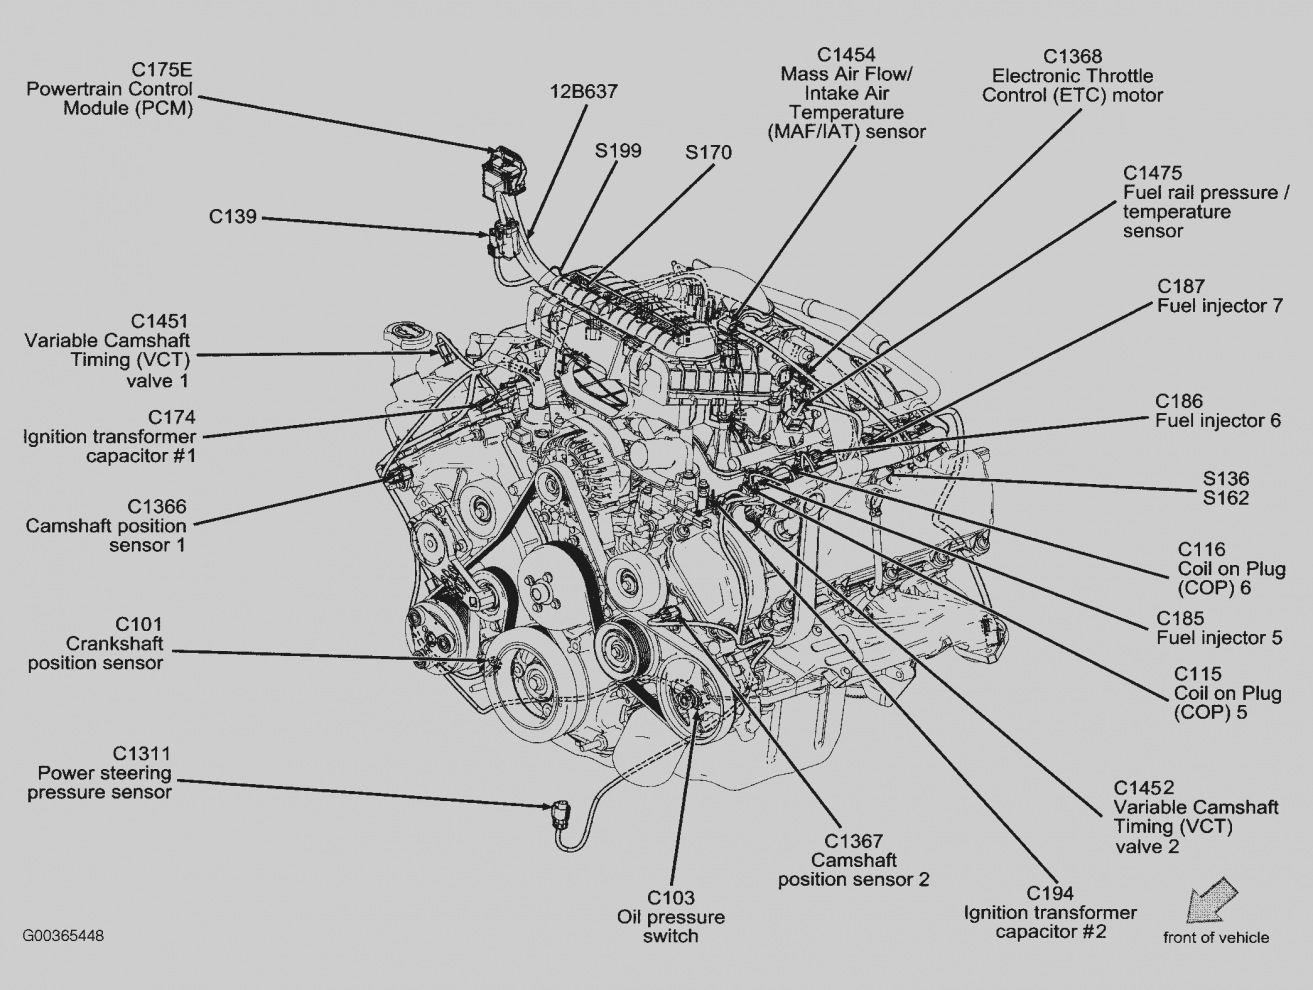 hight resolution of 2006 ford f 150 6 cylinder engine diagram wiring diagram list 2006 ford f 150 6 cylinder engine diagram